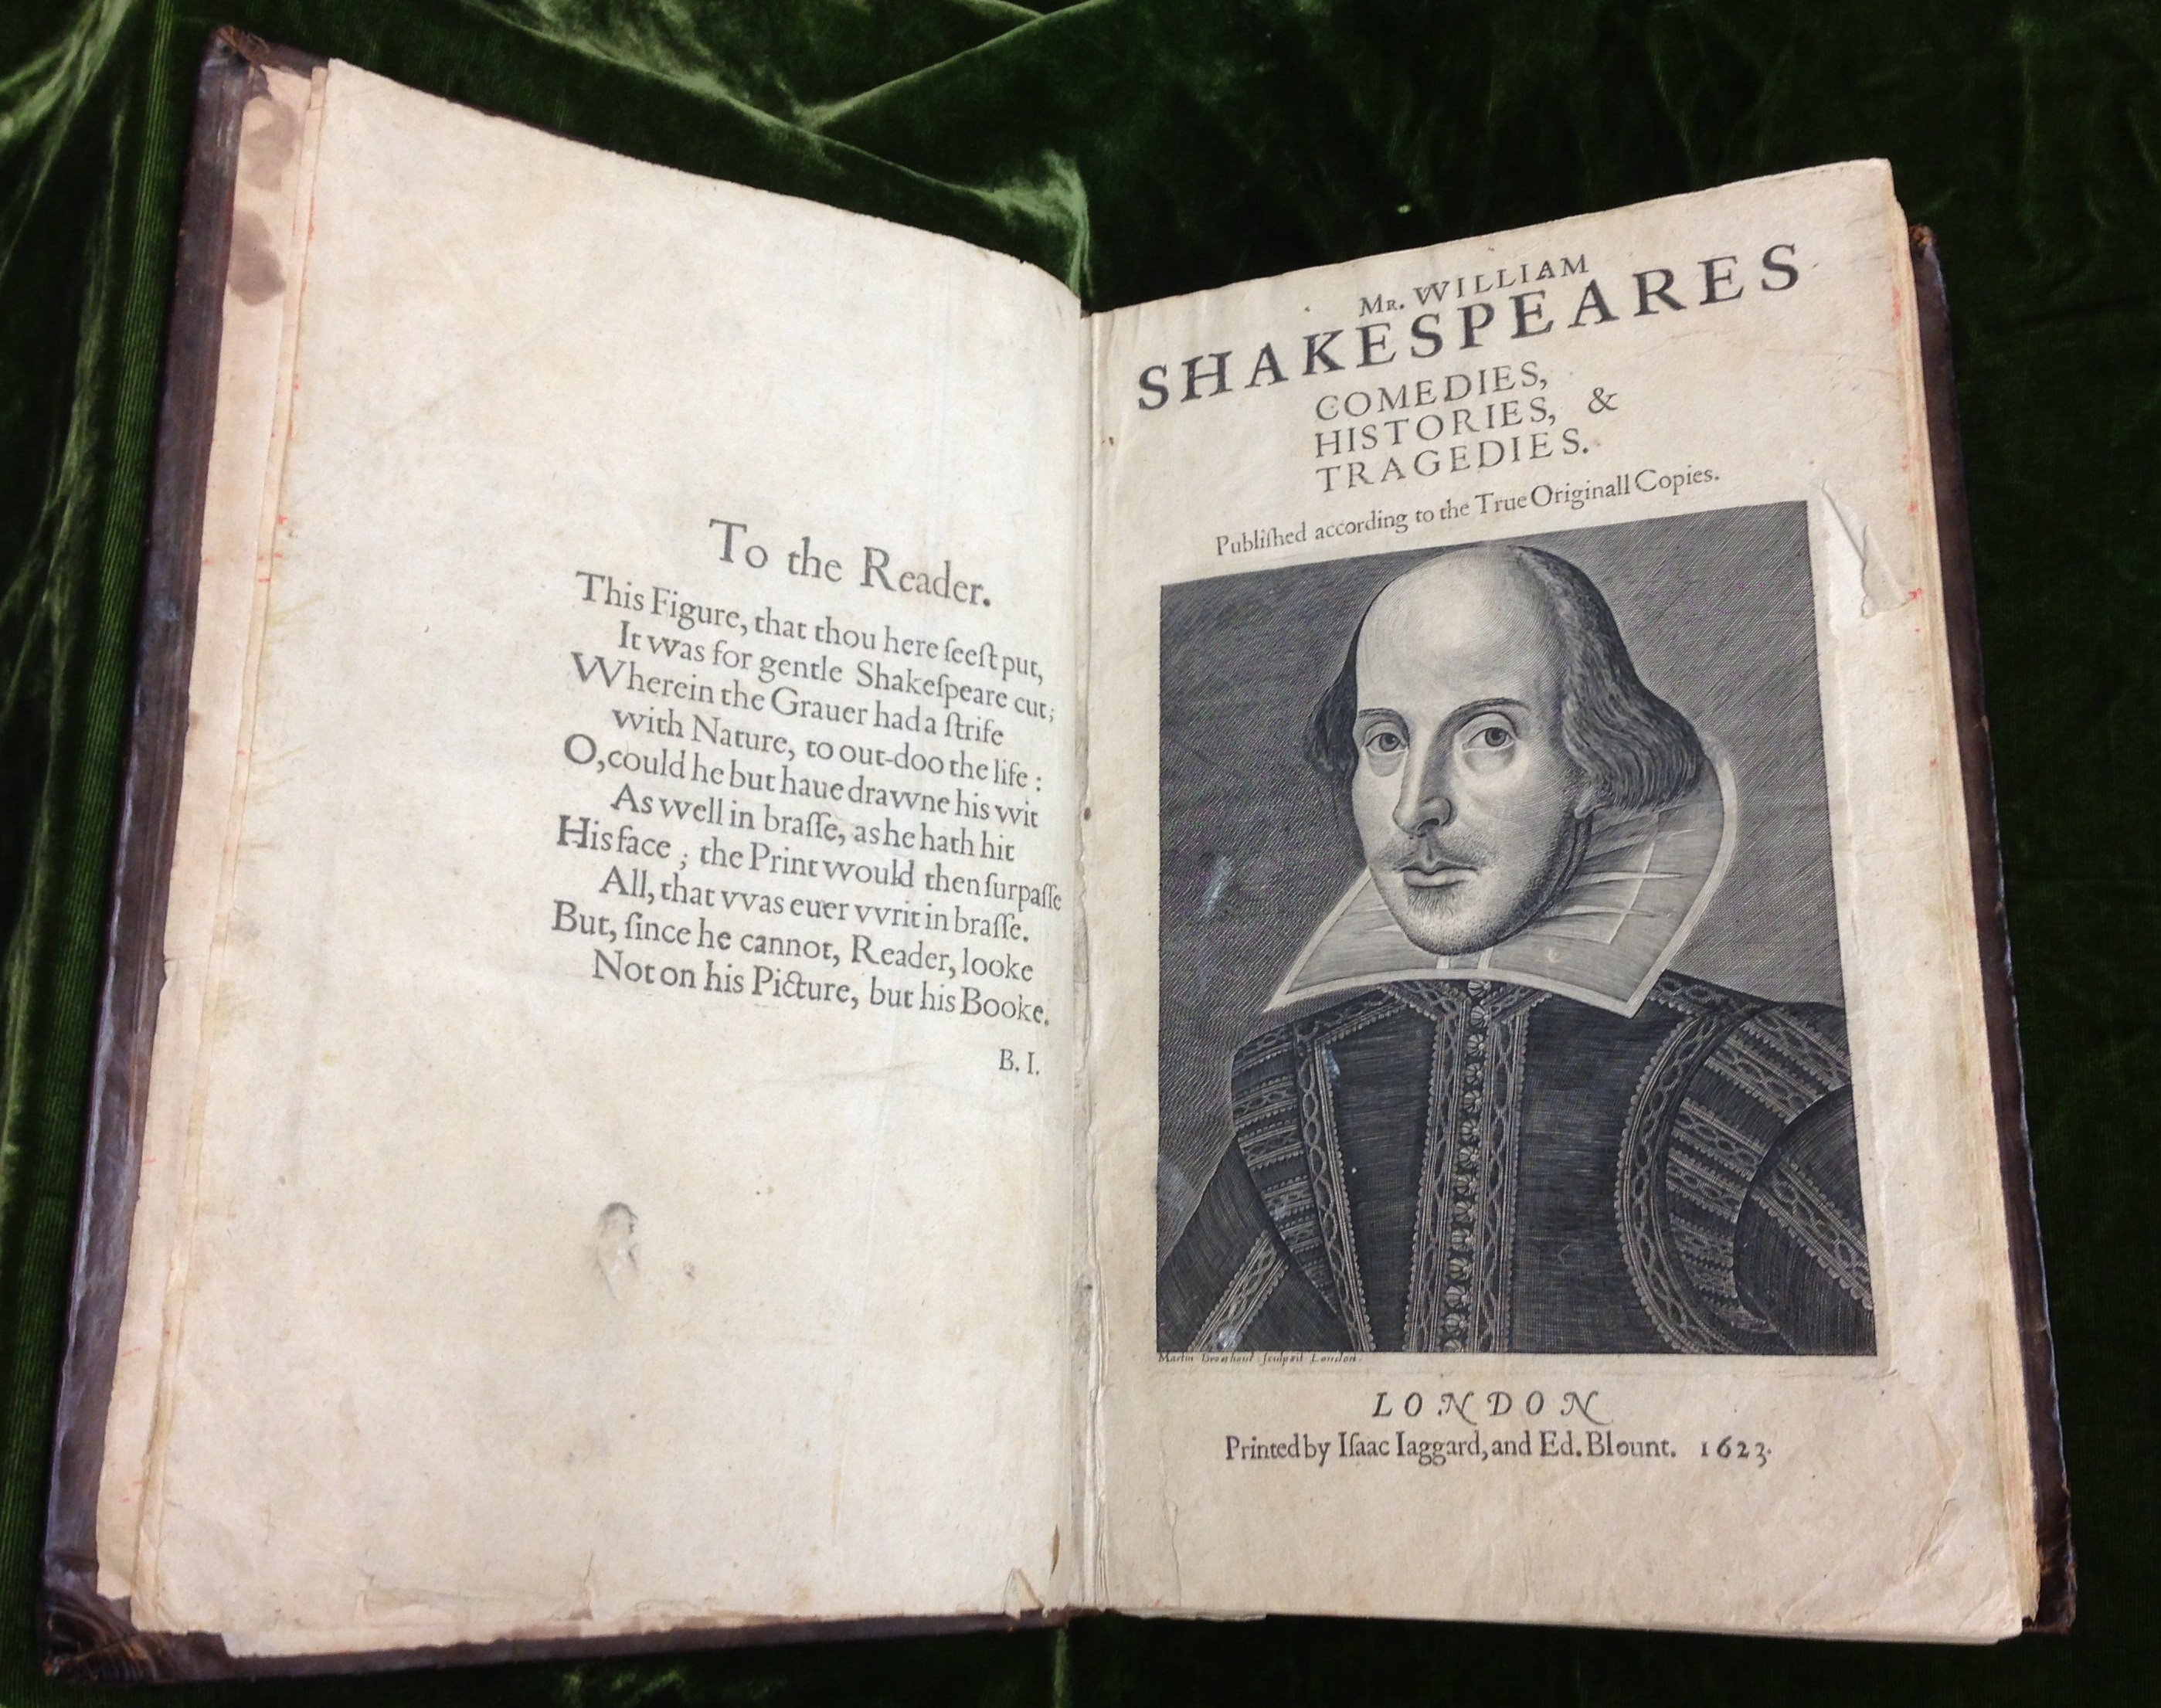 Notes scribbled in Free Library's copy of Shakespeare were written by 'Paradise Lost' poet John Milton